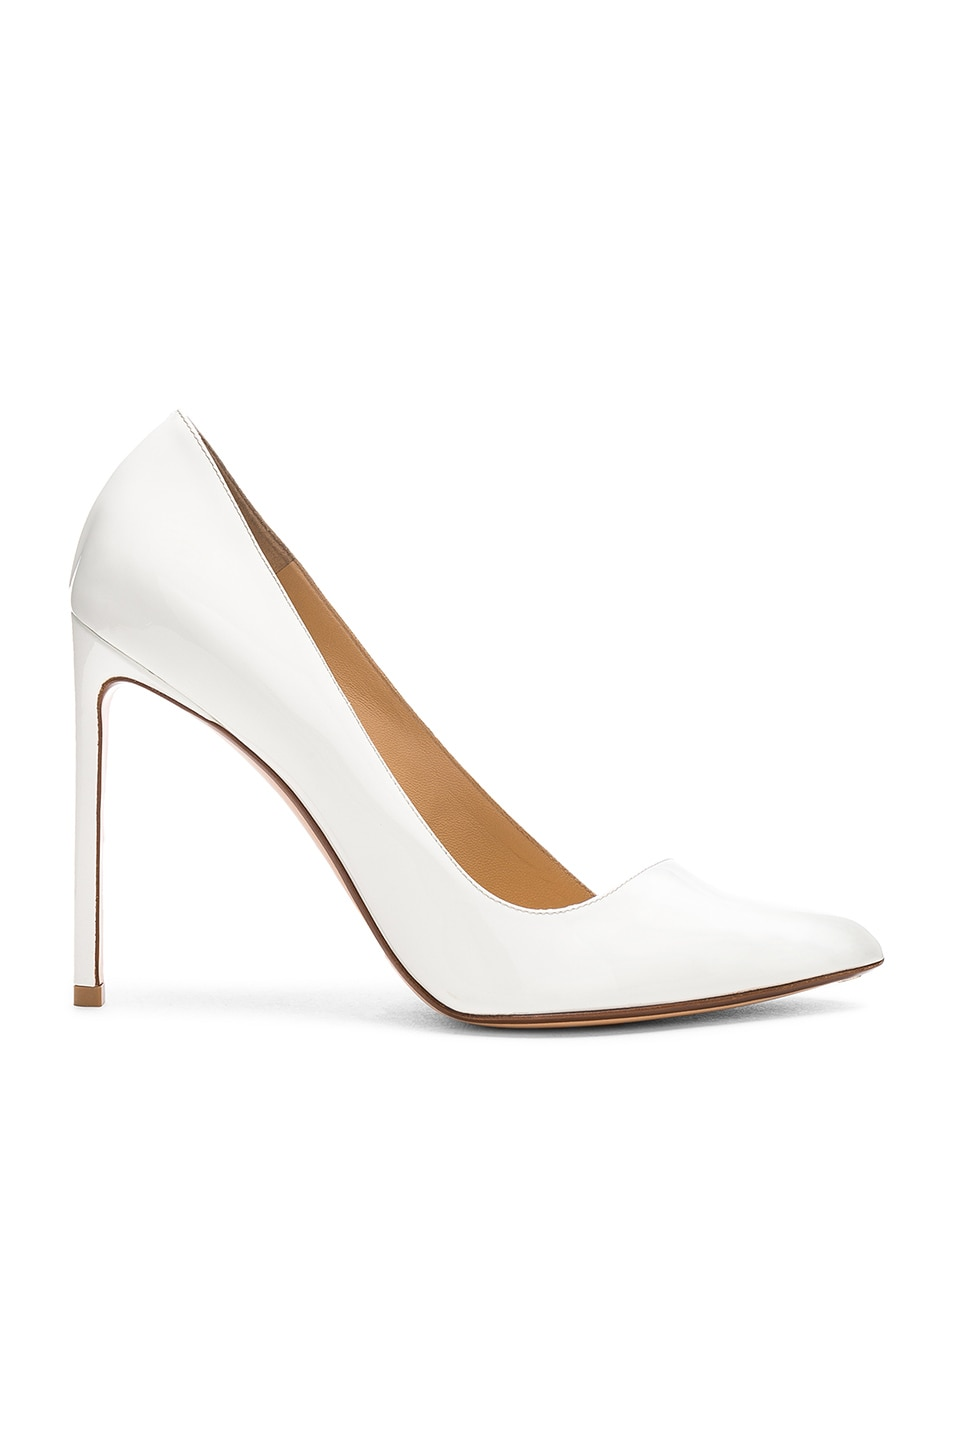 Image 1 of FRANCESCO RUSSO Pointed Toe Heels in White